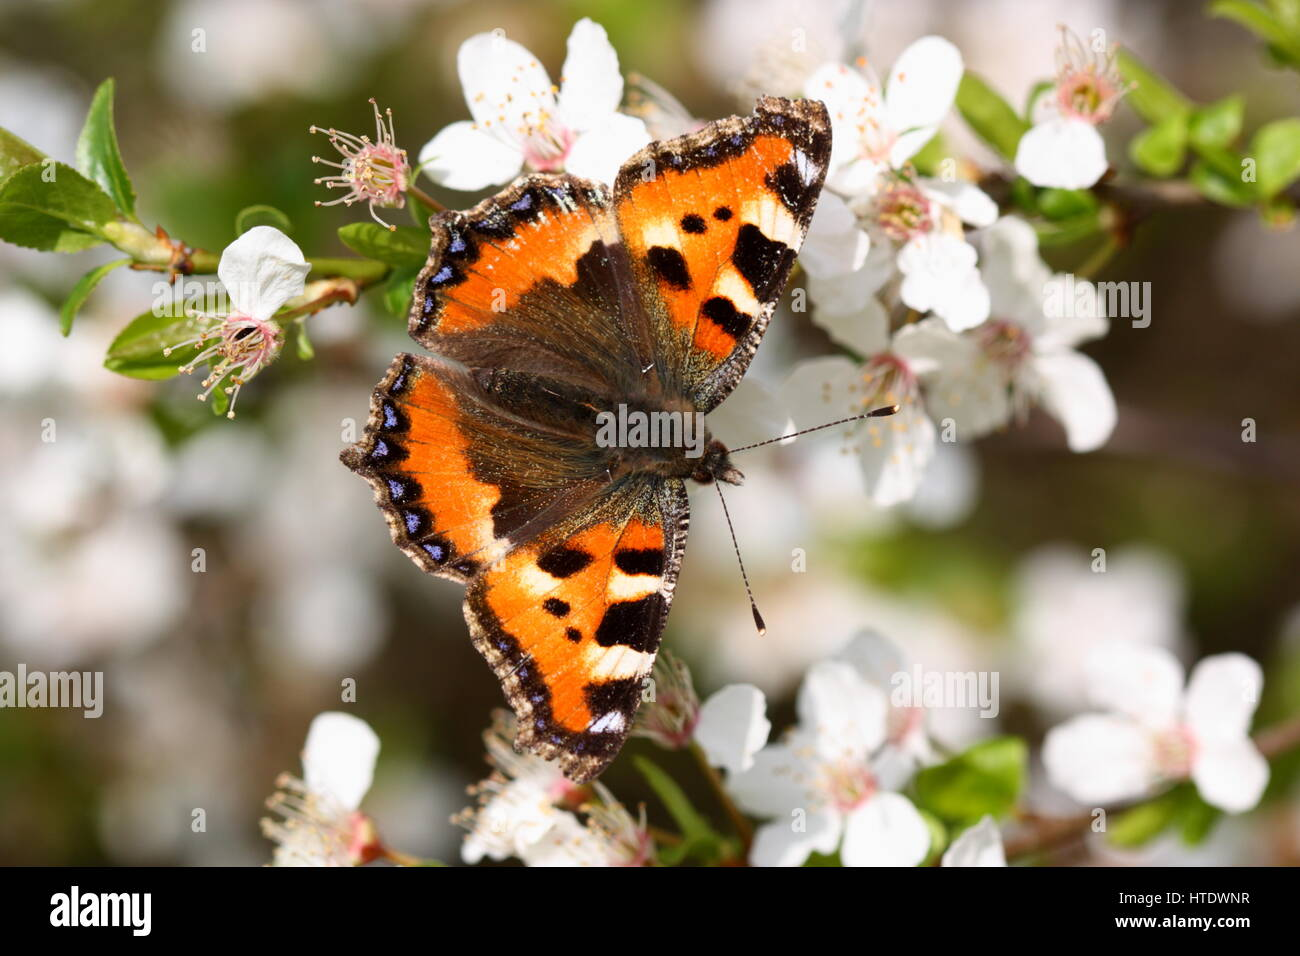 Small Tortoiseshell Butterfly nectaring on Spring blossom - Stock Image